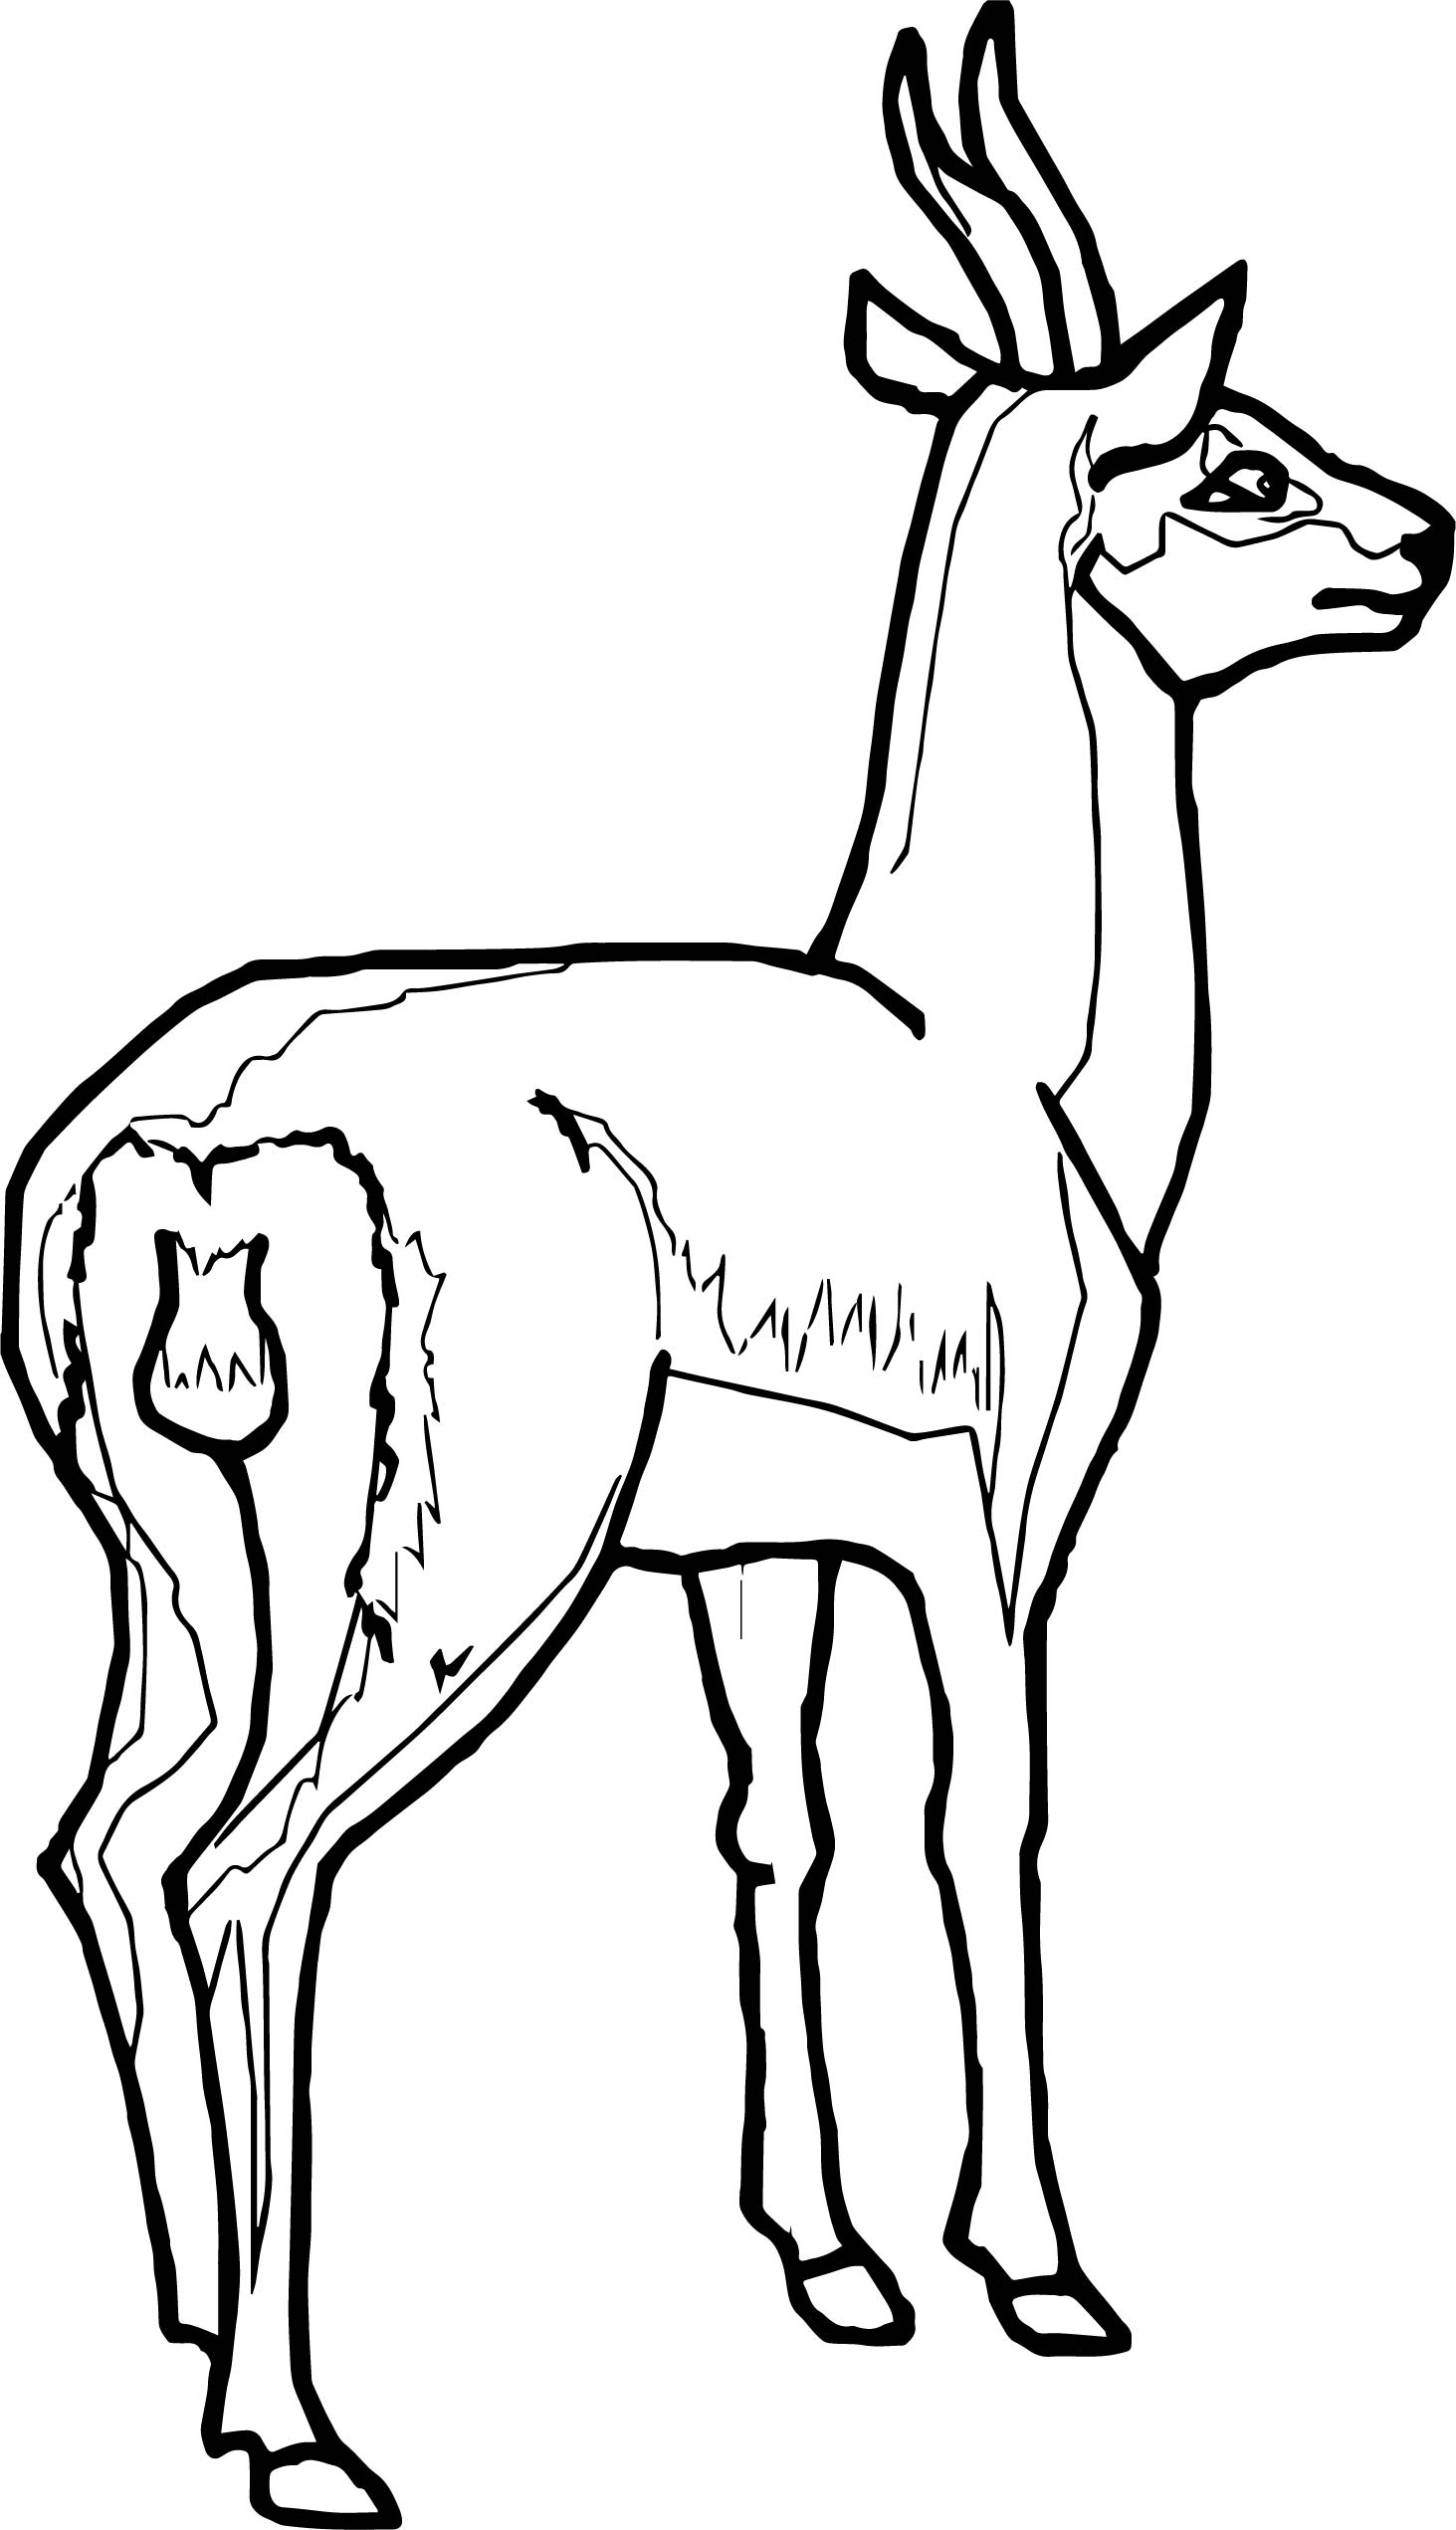 gazelle coloring pages - photo#18